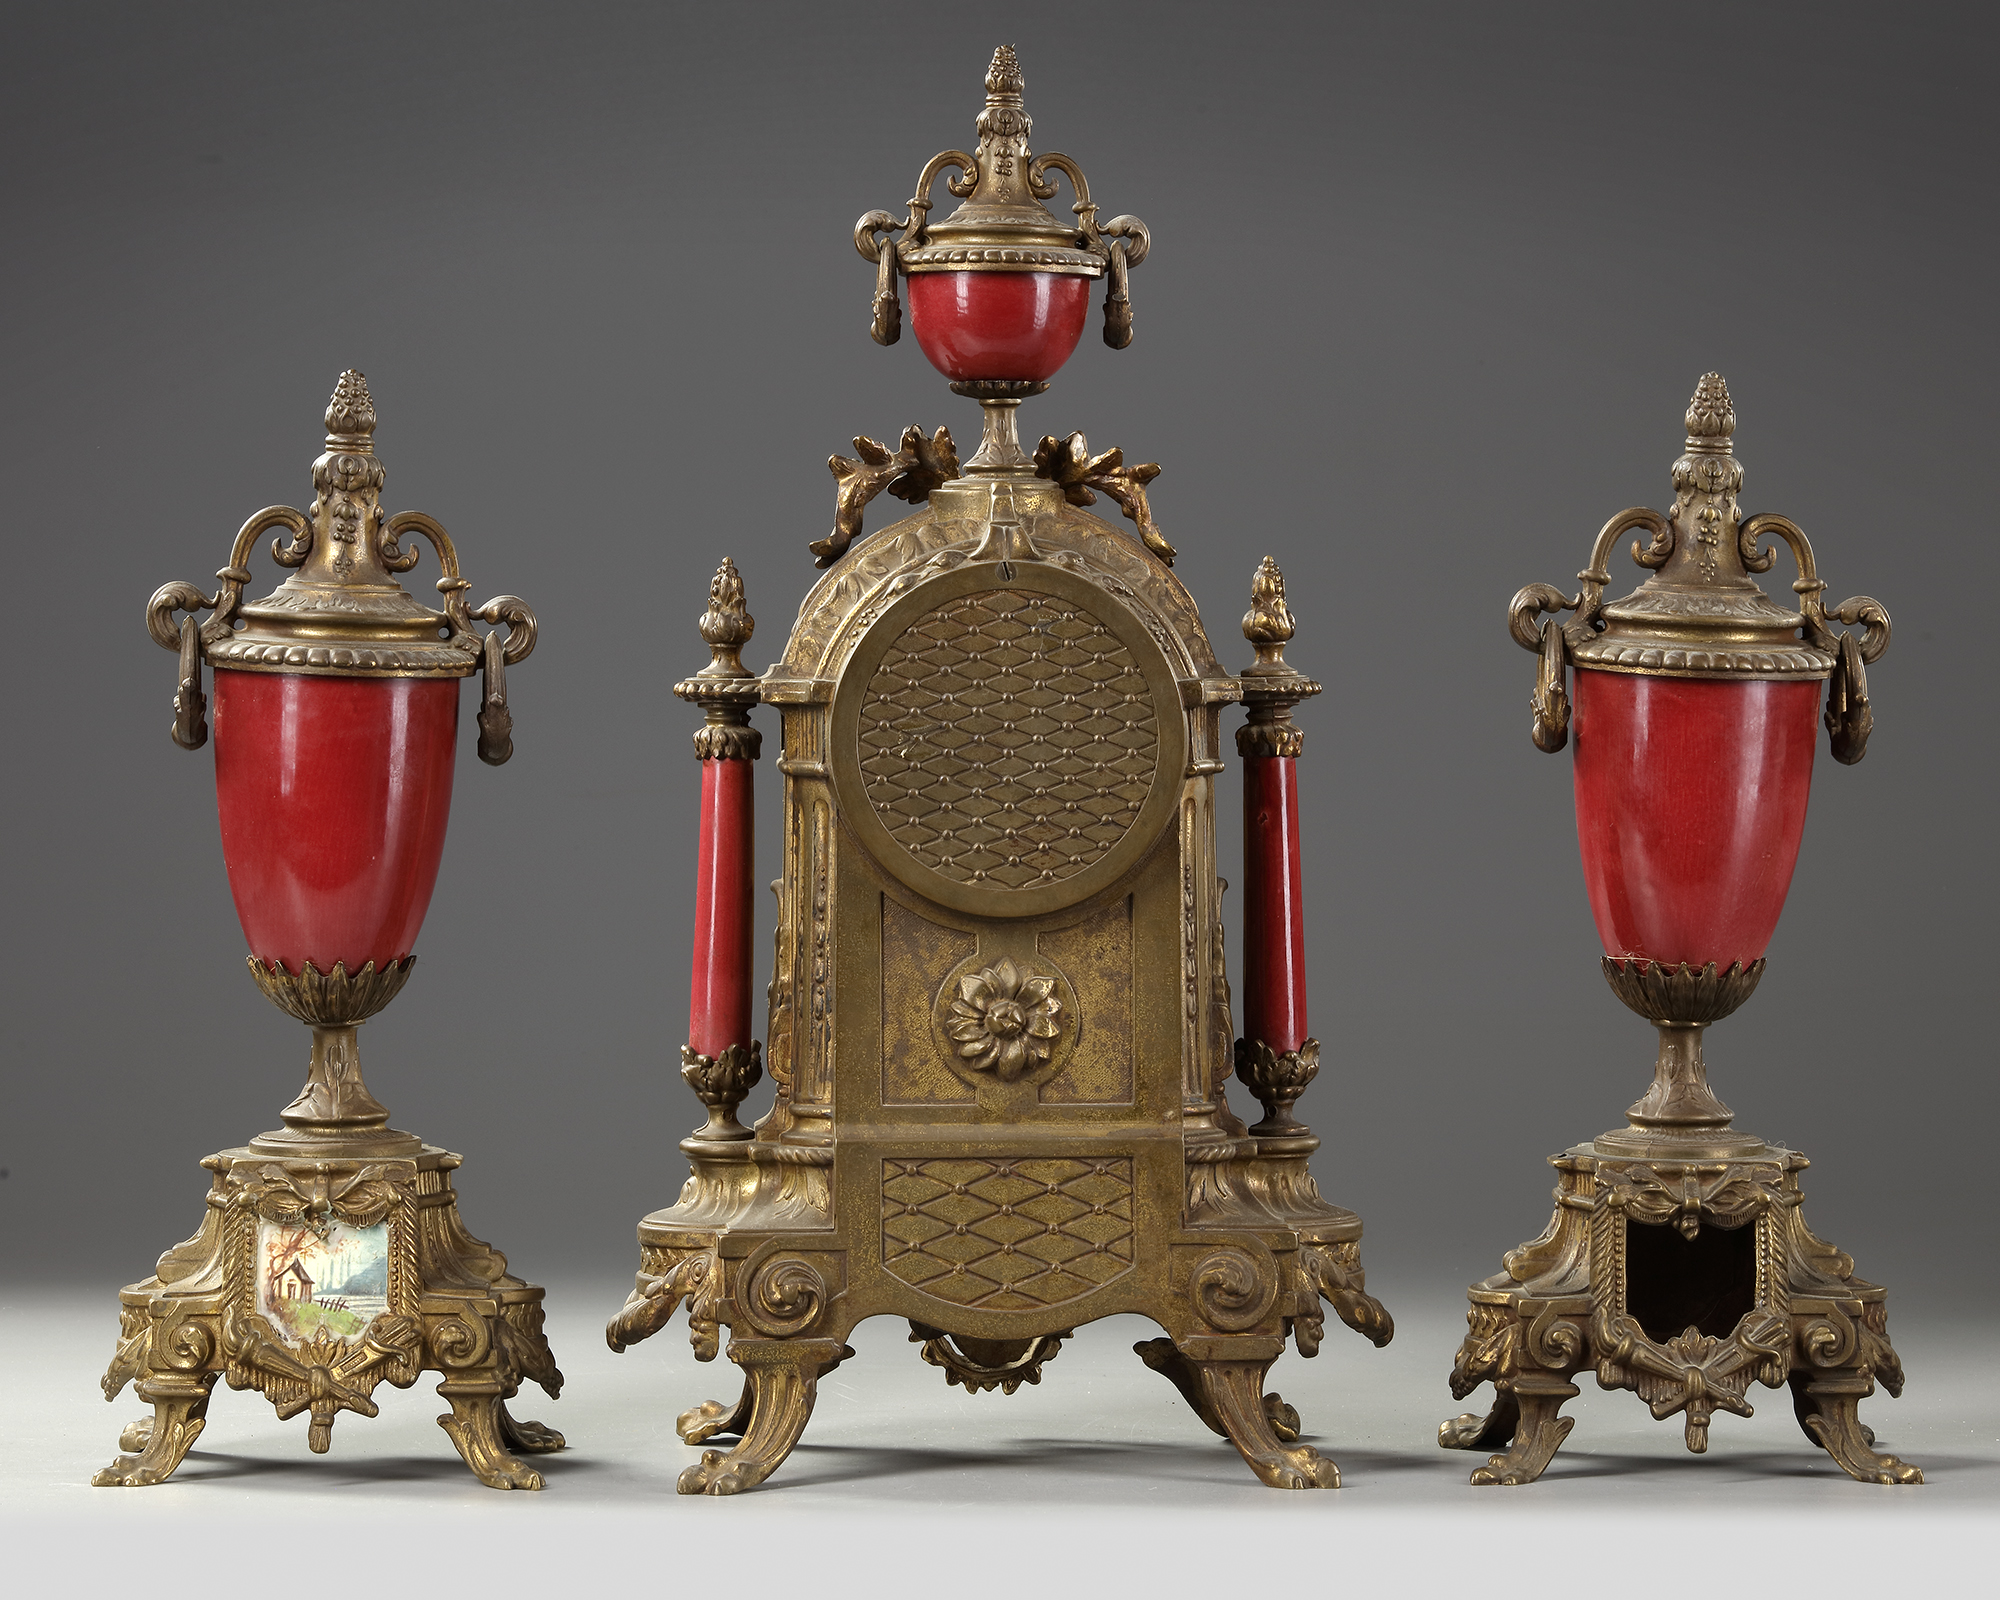 A SPELTER AND RED PORCELAIN CLOCK SET, 19TH CENTURY - Image 4 of 4